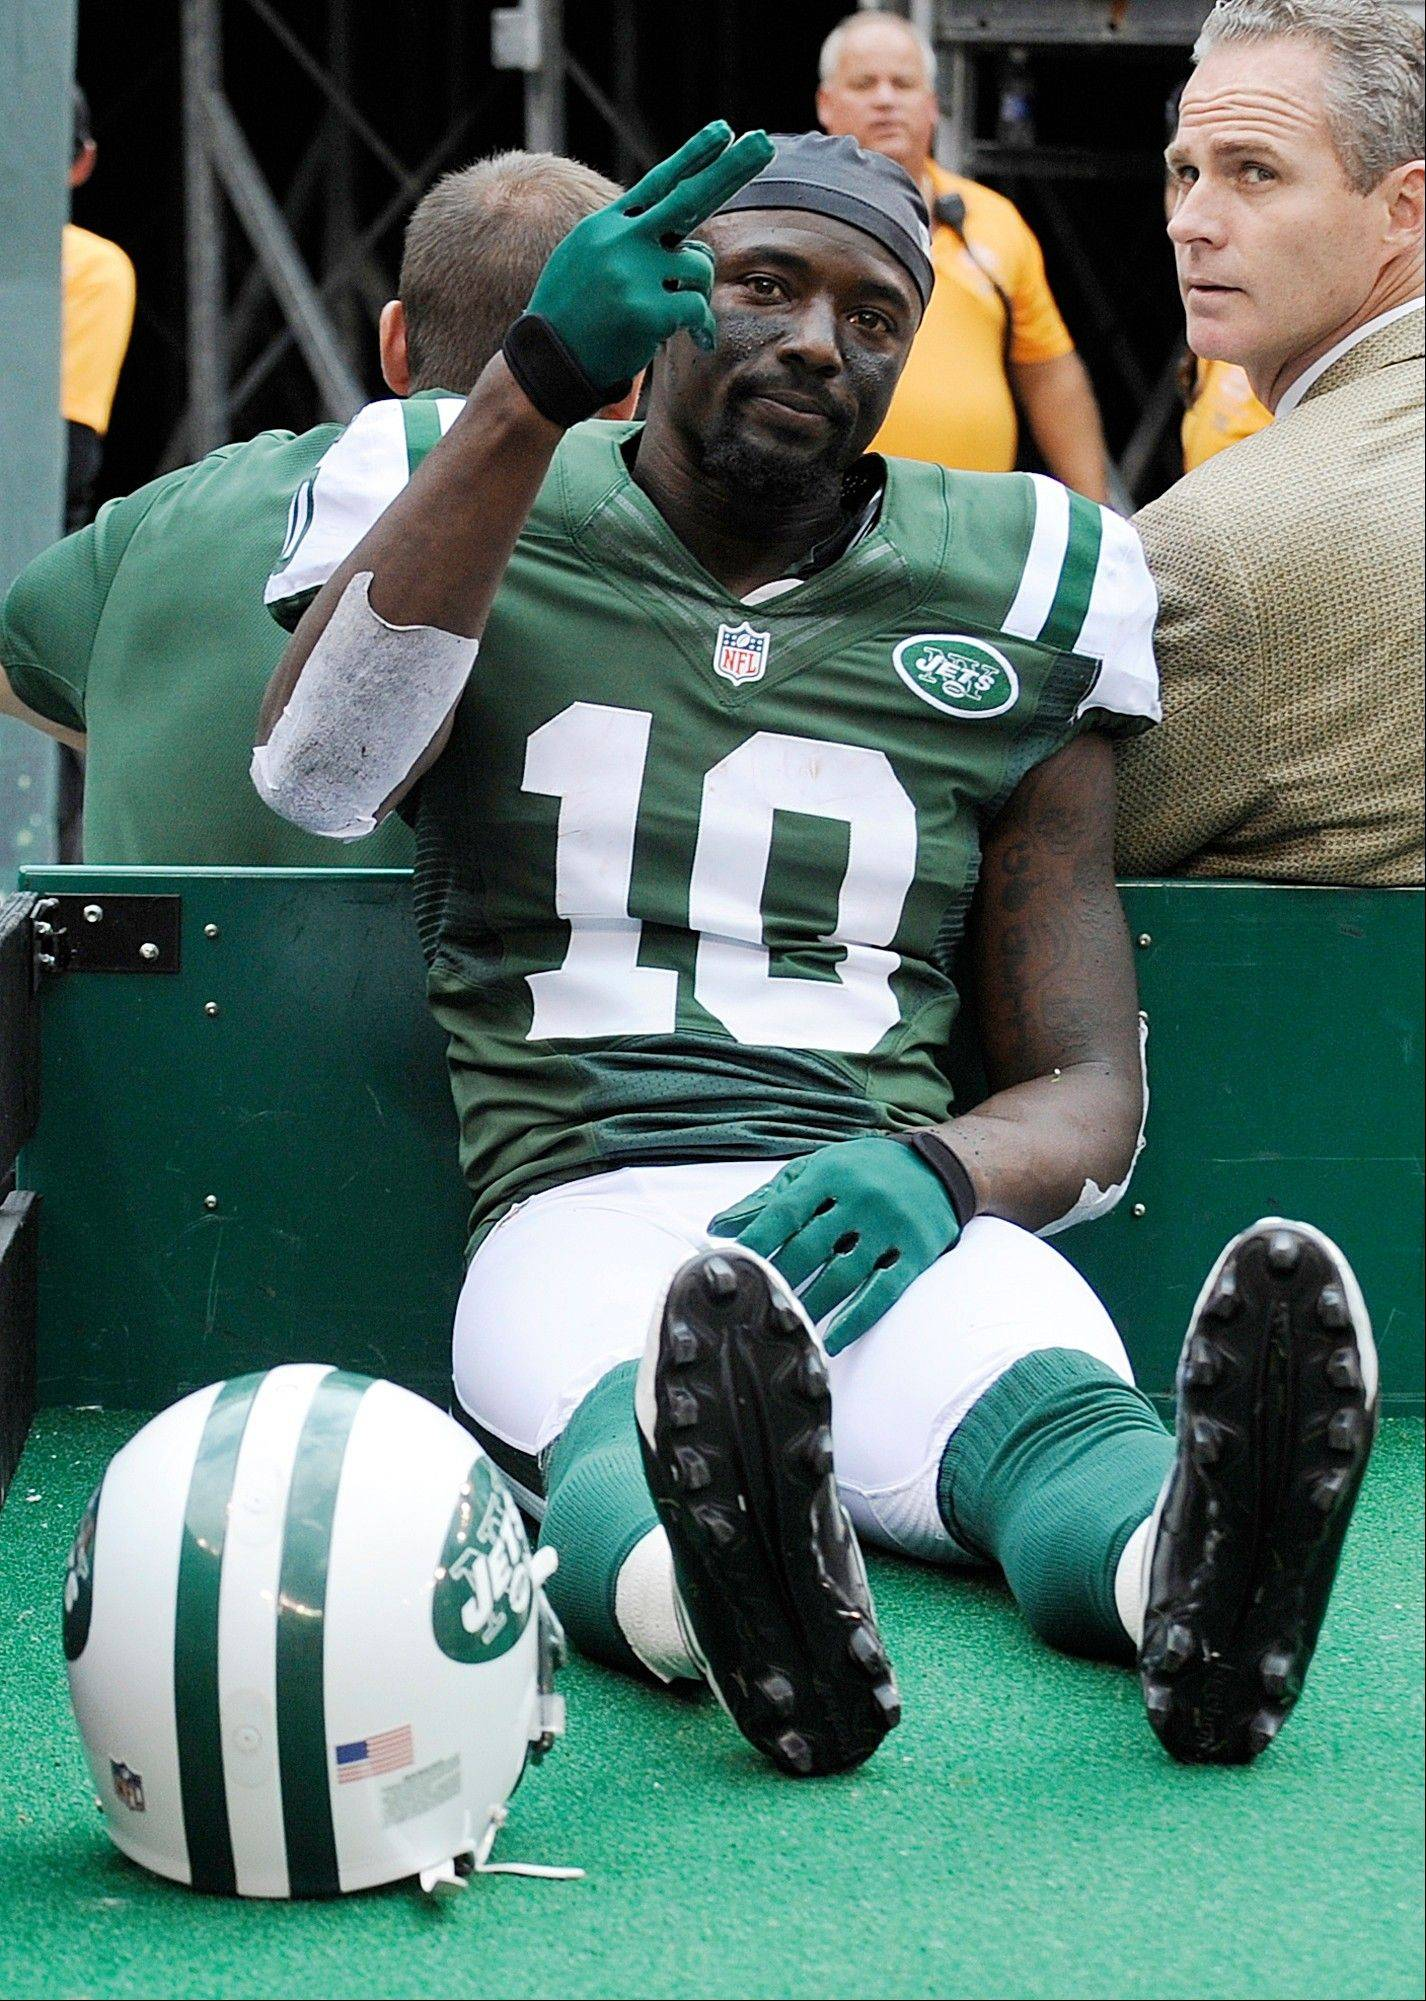 Injured New York Jets wide receiver Santonio Holmes gestures to fans as he is carted off the field during Sunday's game against San Francisco in East Rutherford, N.J.